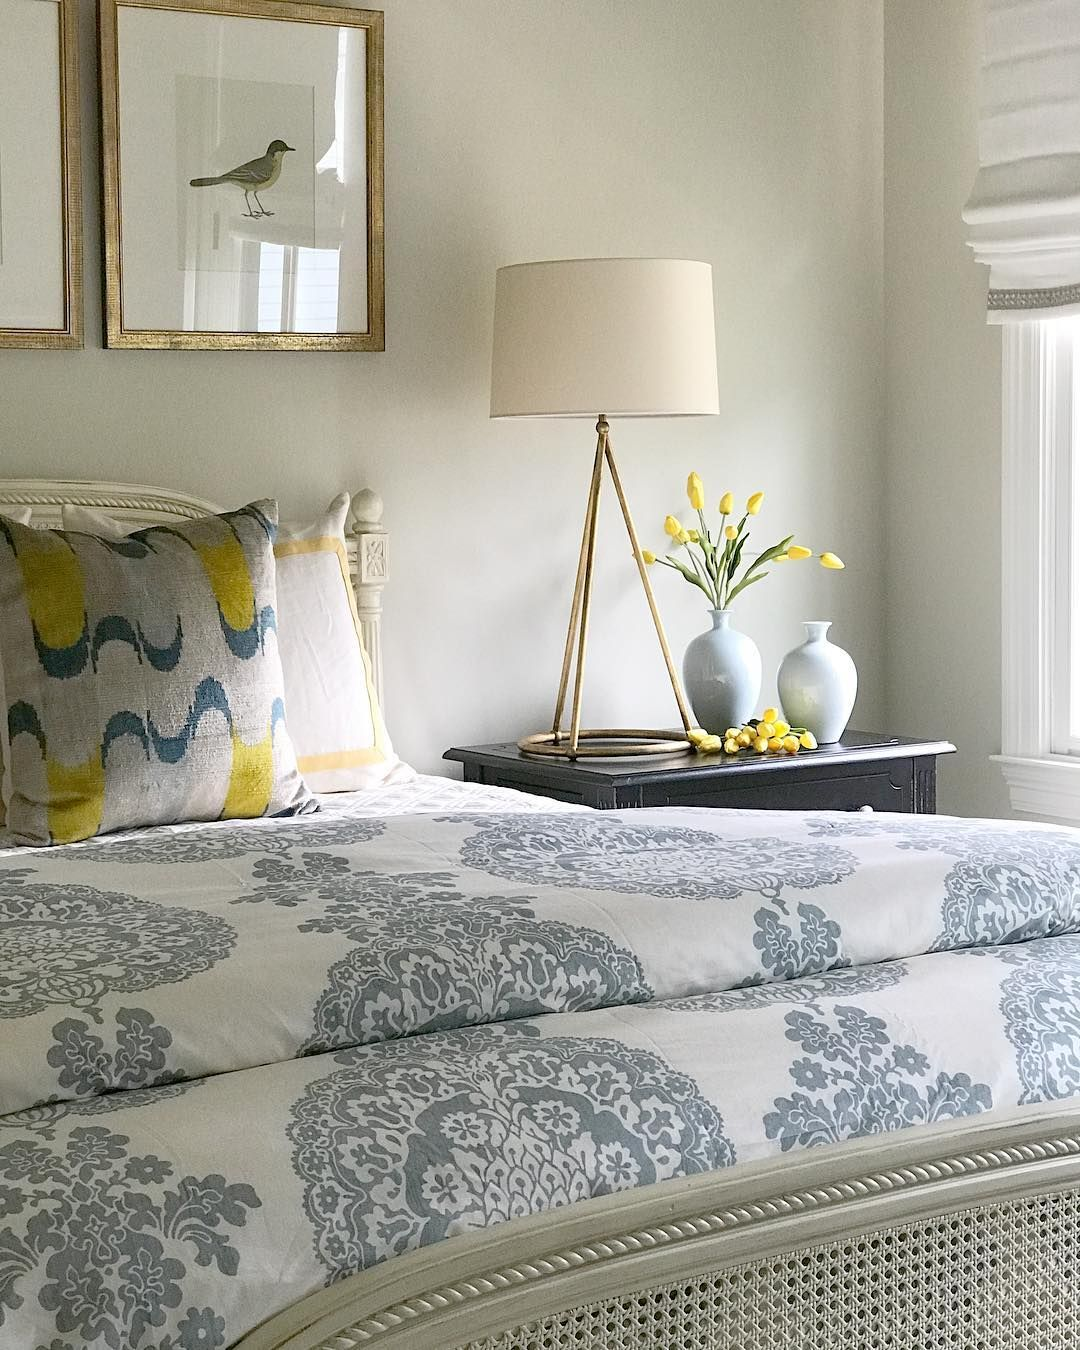 Rachel Cannon Ltd Interiors On Instagram The Cozy Guest Room At